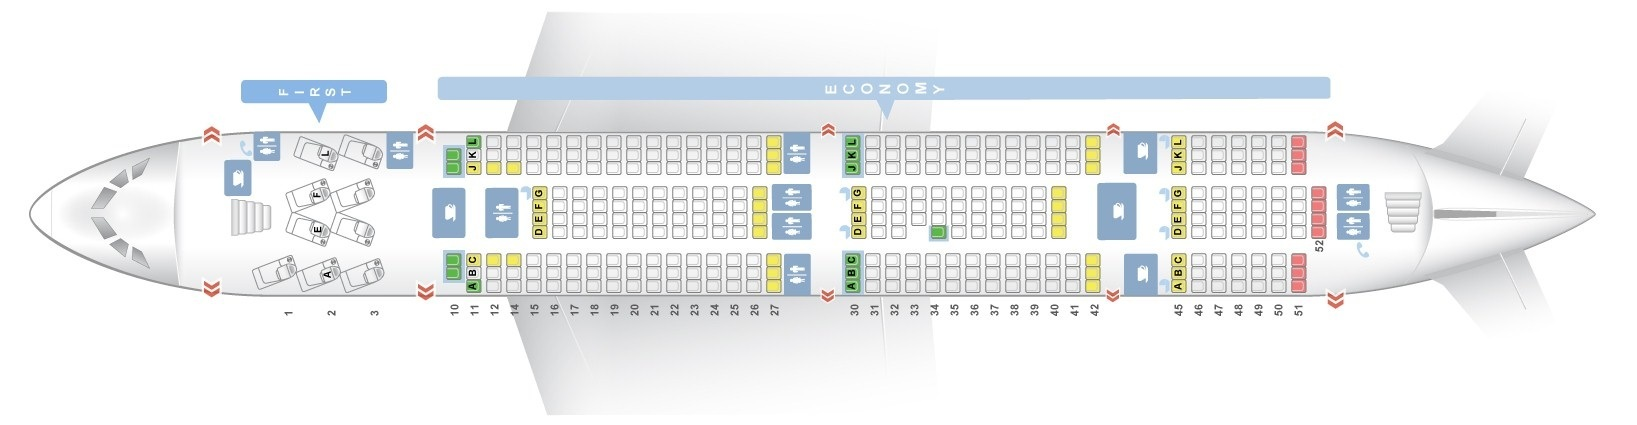 A380 800 Seat Map Seat map Airbus A380 800 Air France. Best seats in plane